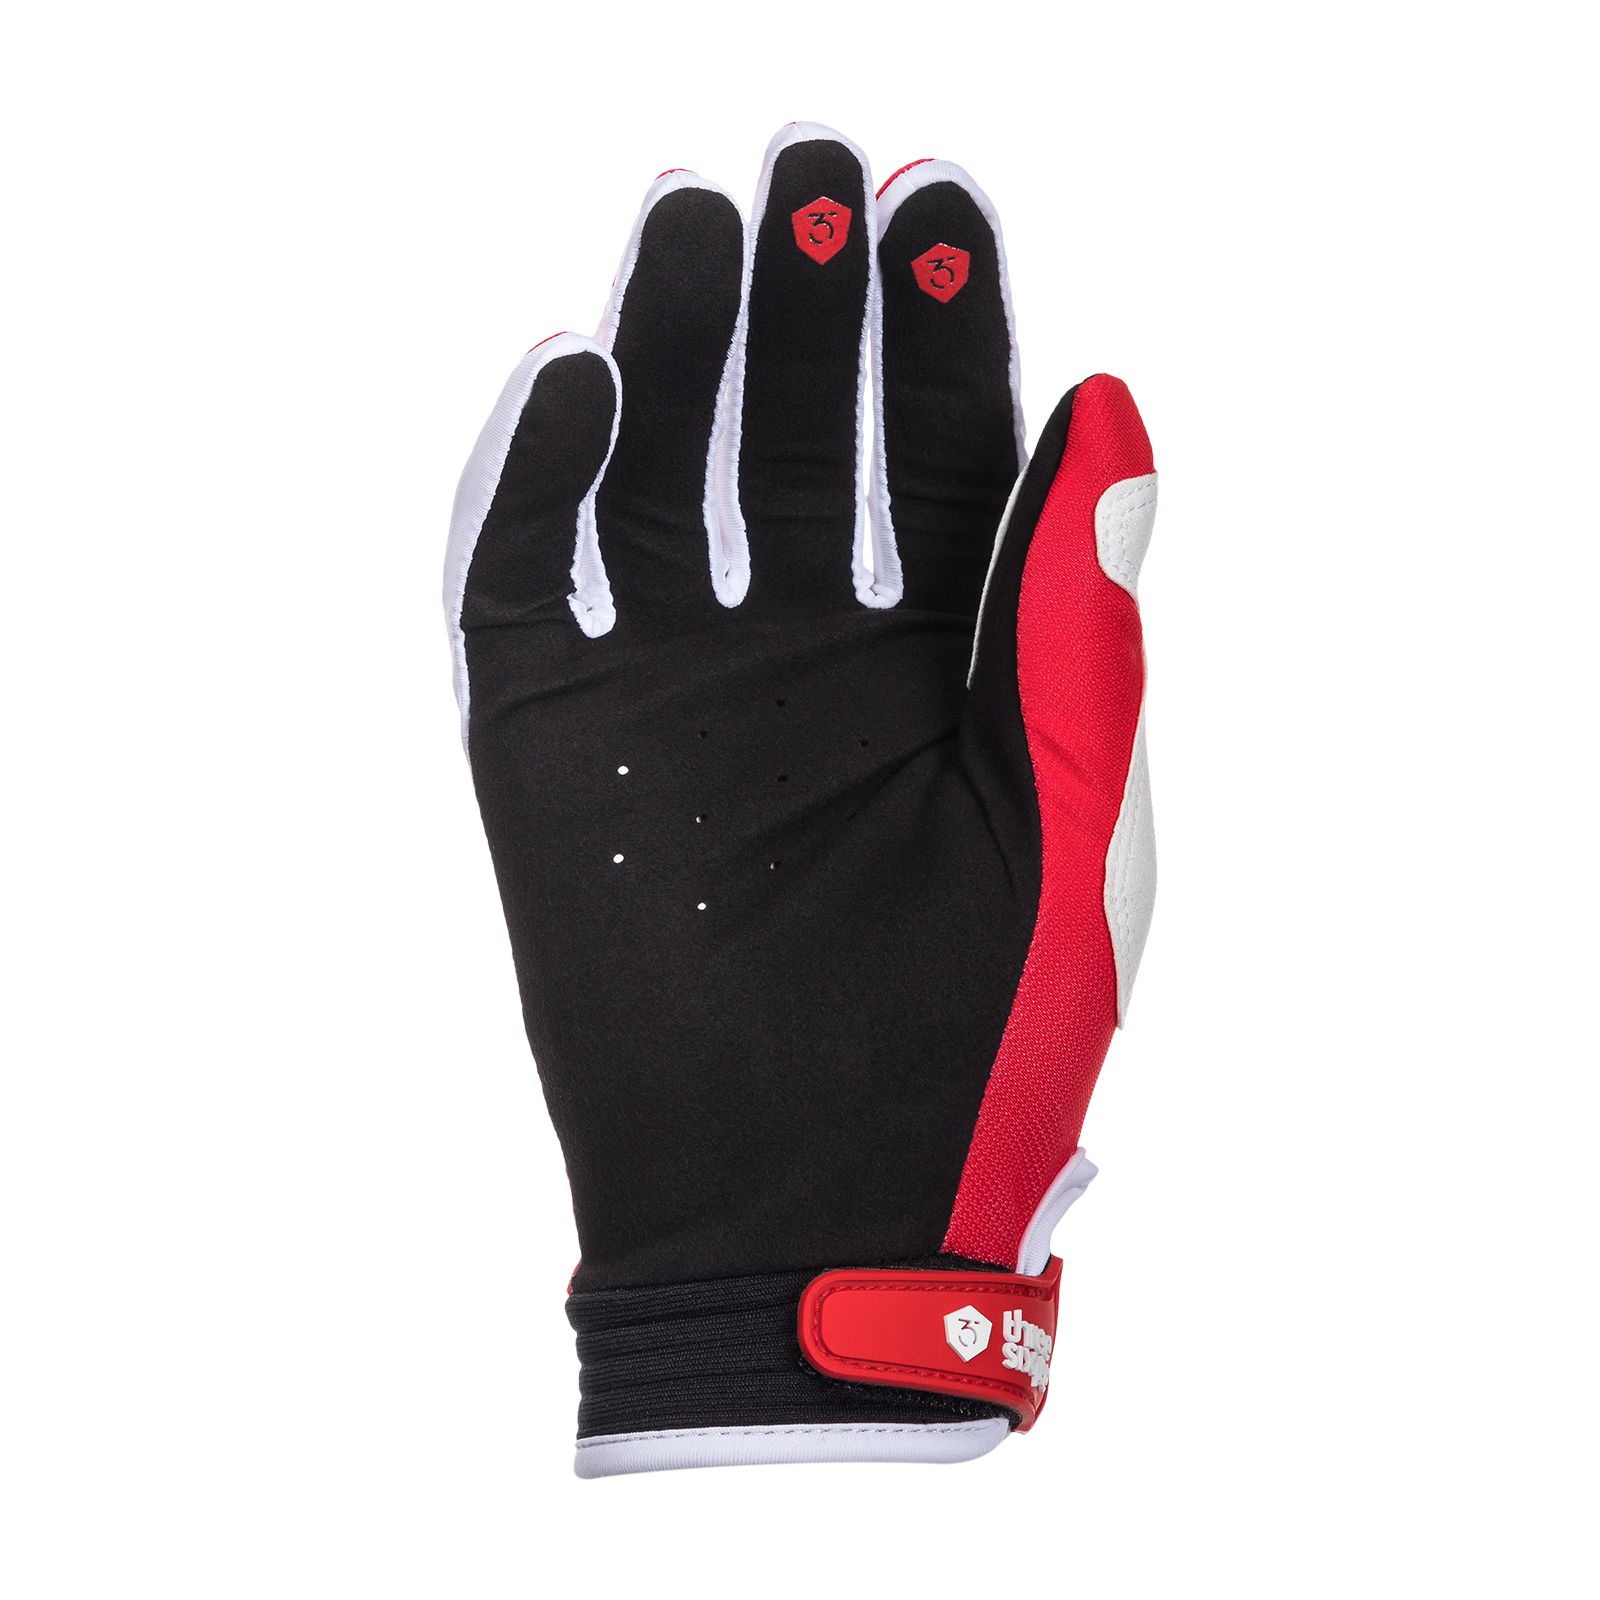 Sports gloves product photography